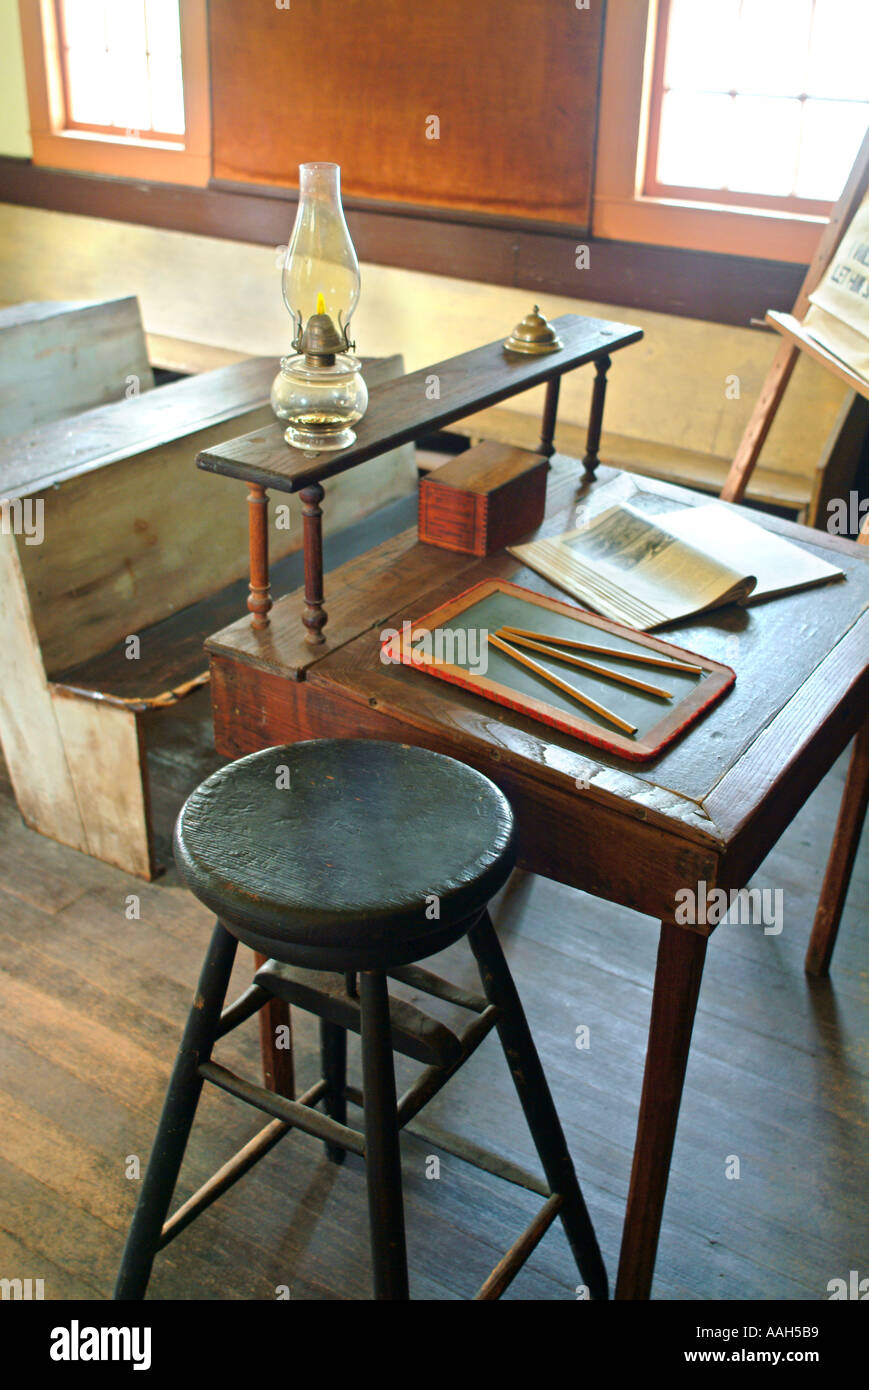 old fashioned one room school house with wooden desk chairs stool